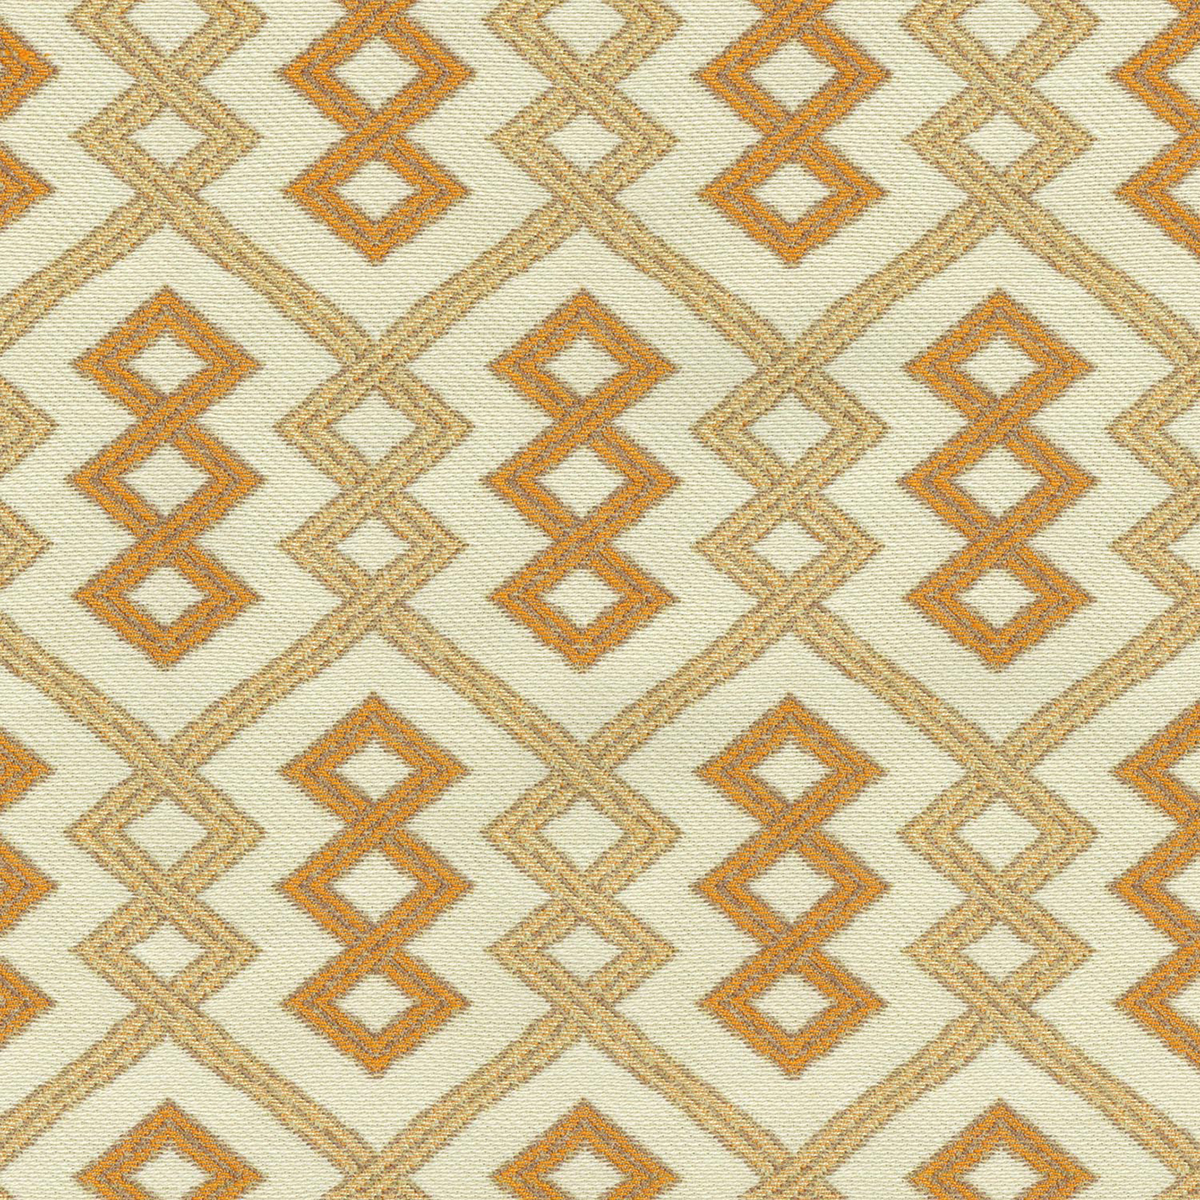 Home Decor 8\u0022x8\u0022 Fabric Swatch-IMAN Home Tribal Twist Nectar